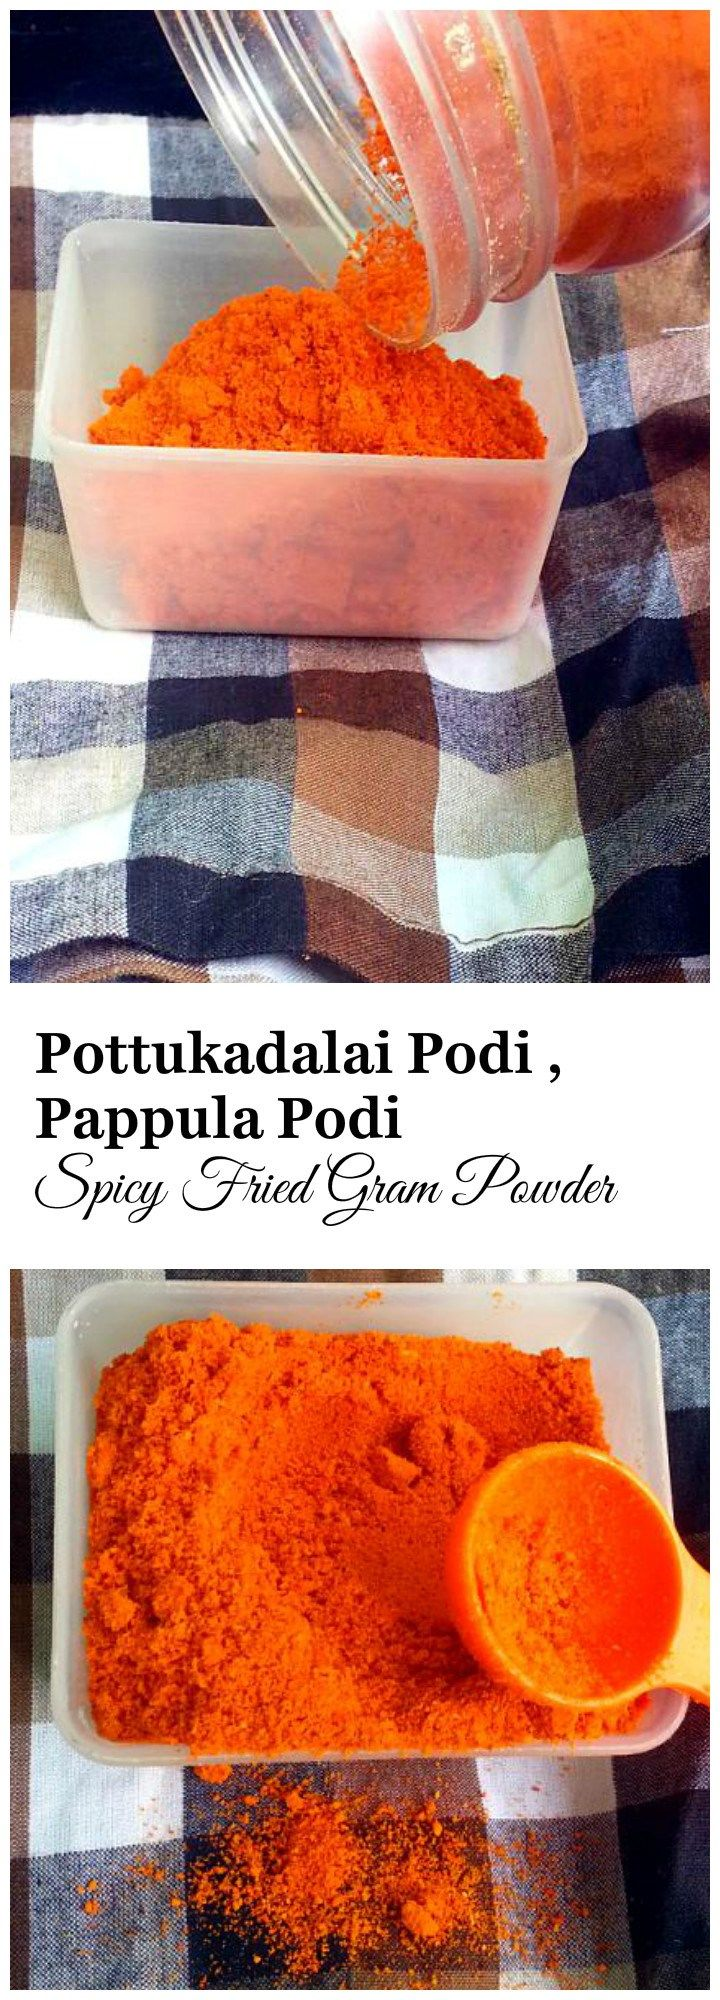 Pottukadalai Podi Recipe, meaning Fried Gram Powder. This is a could accompaniment for breakfast when there is no time to make chutneys